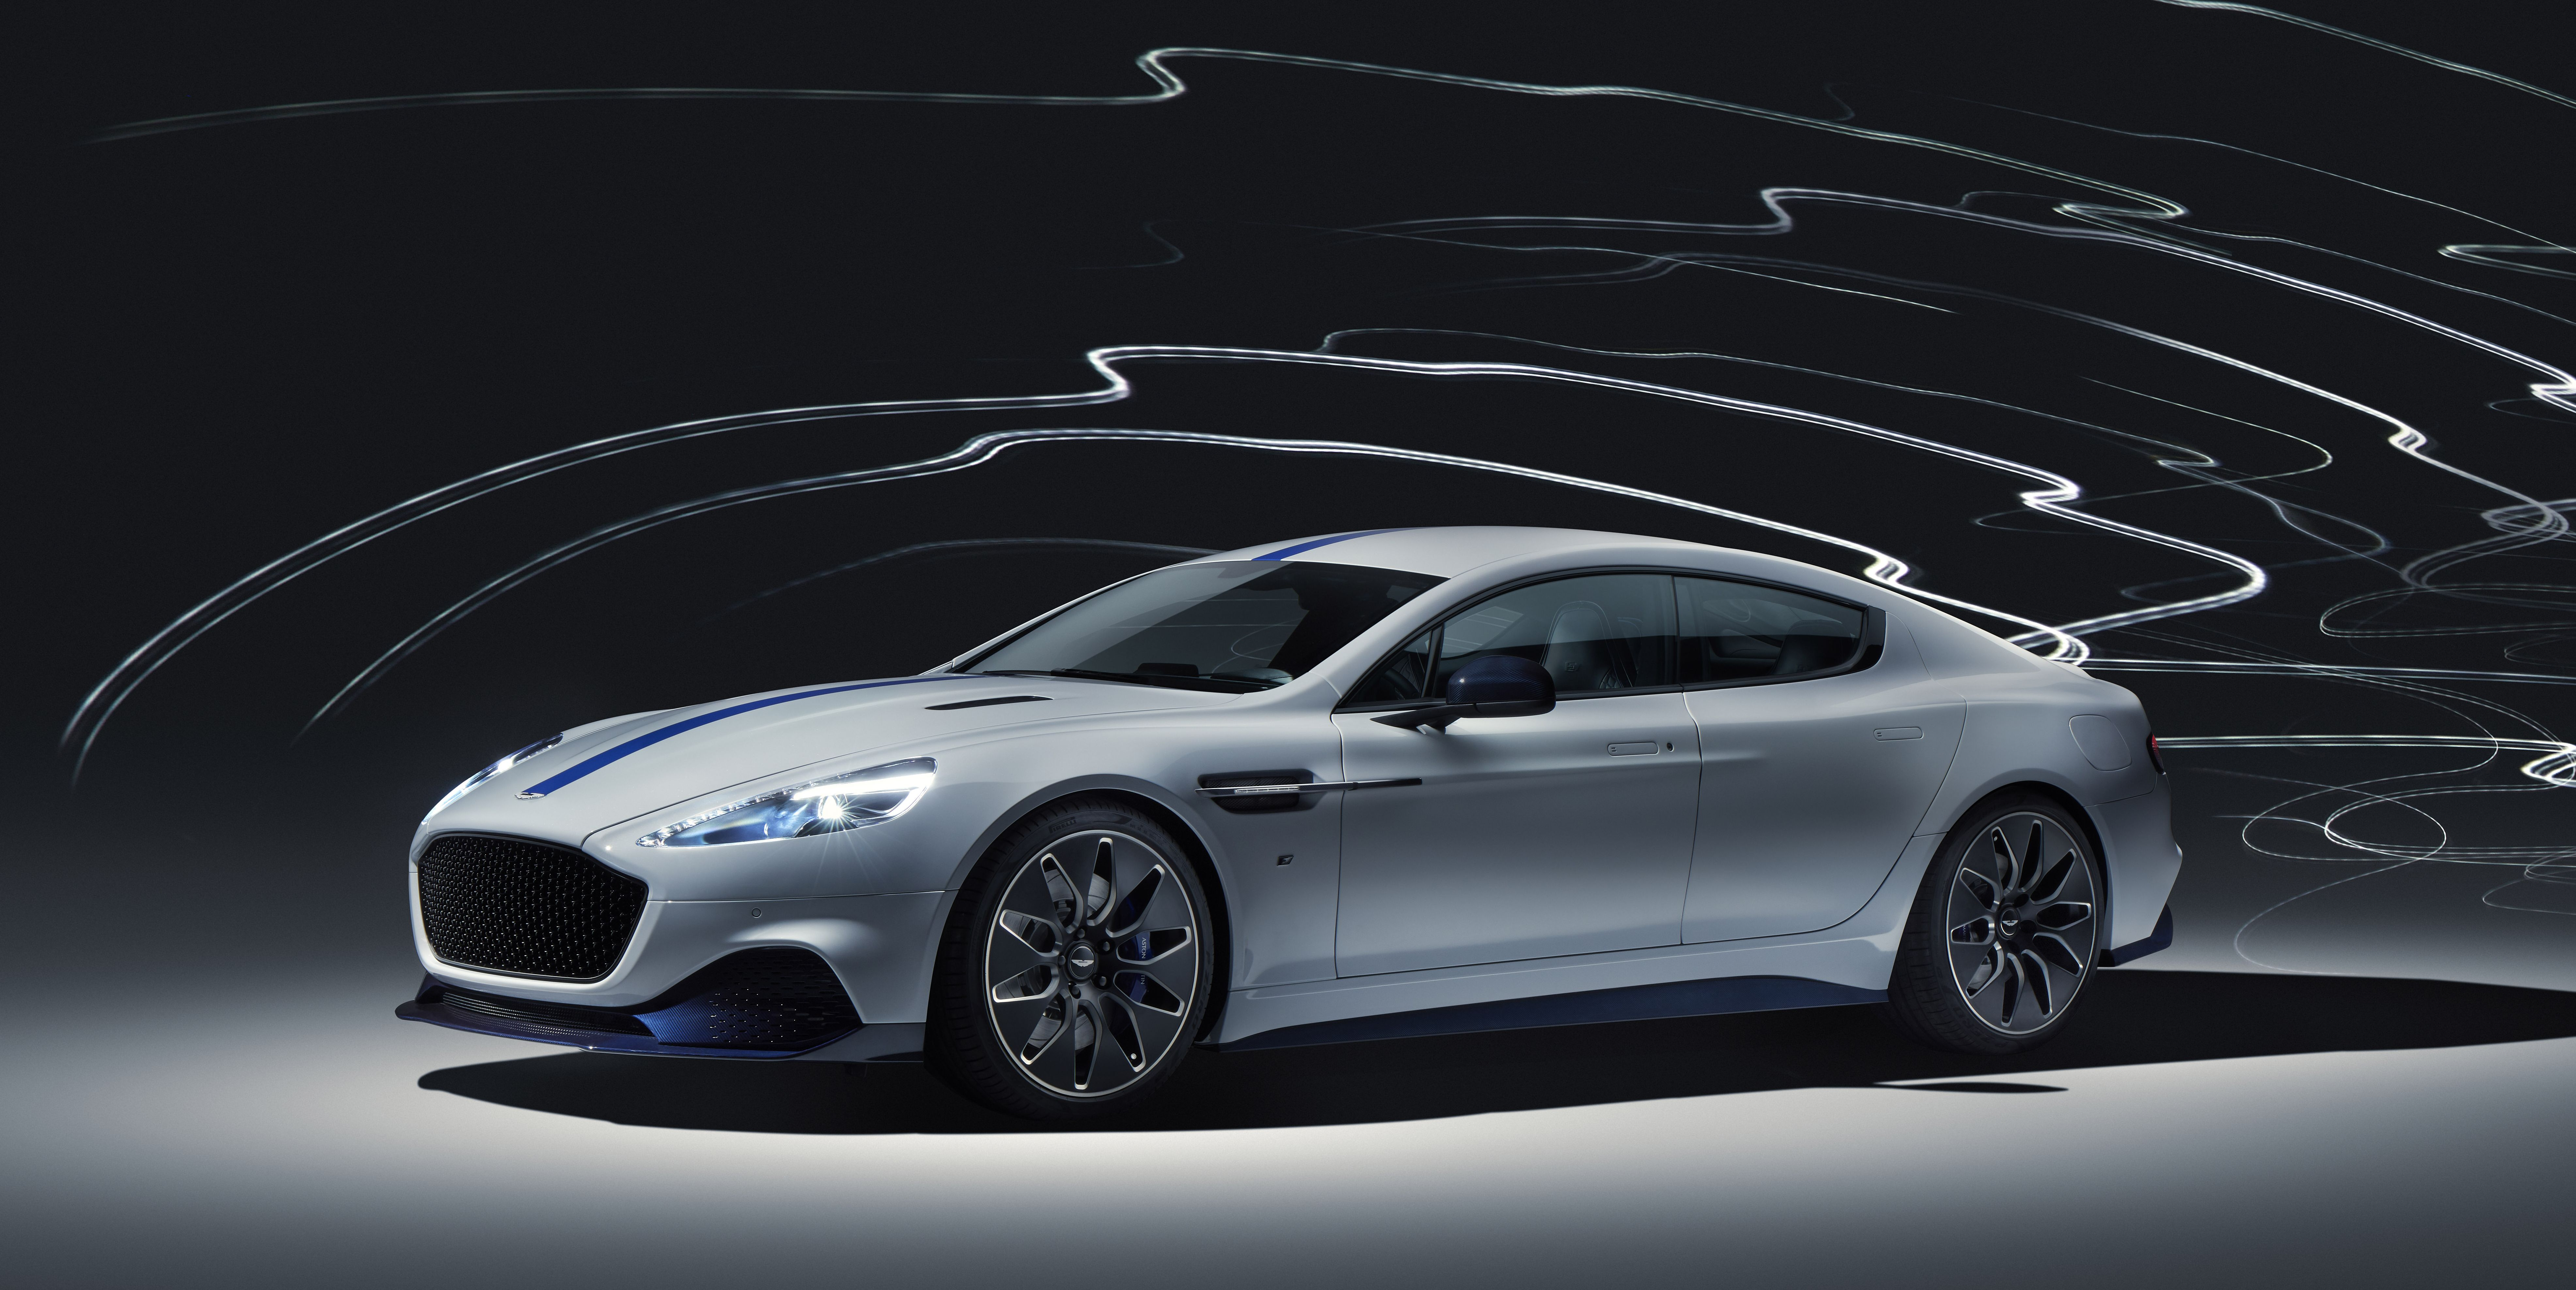 The 2020 Aston Martin Rapide E Is Aston's First Electric Production Car